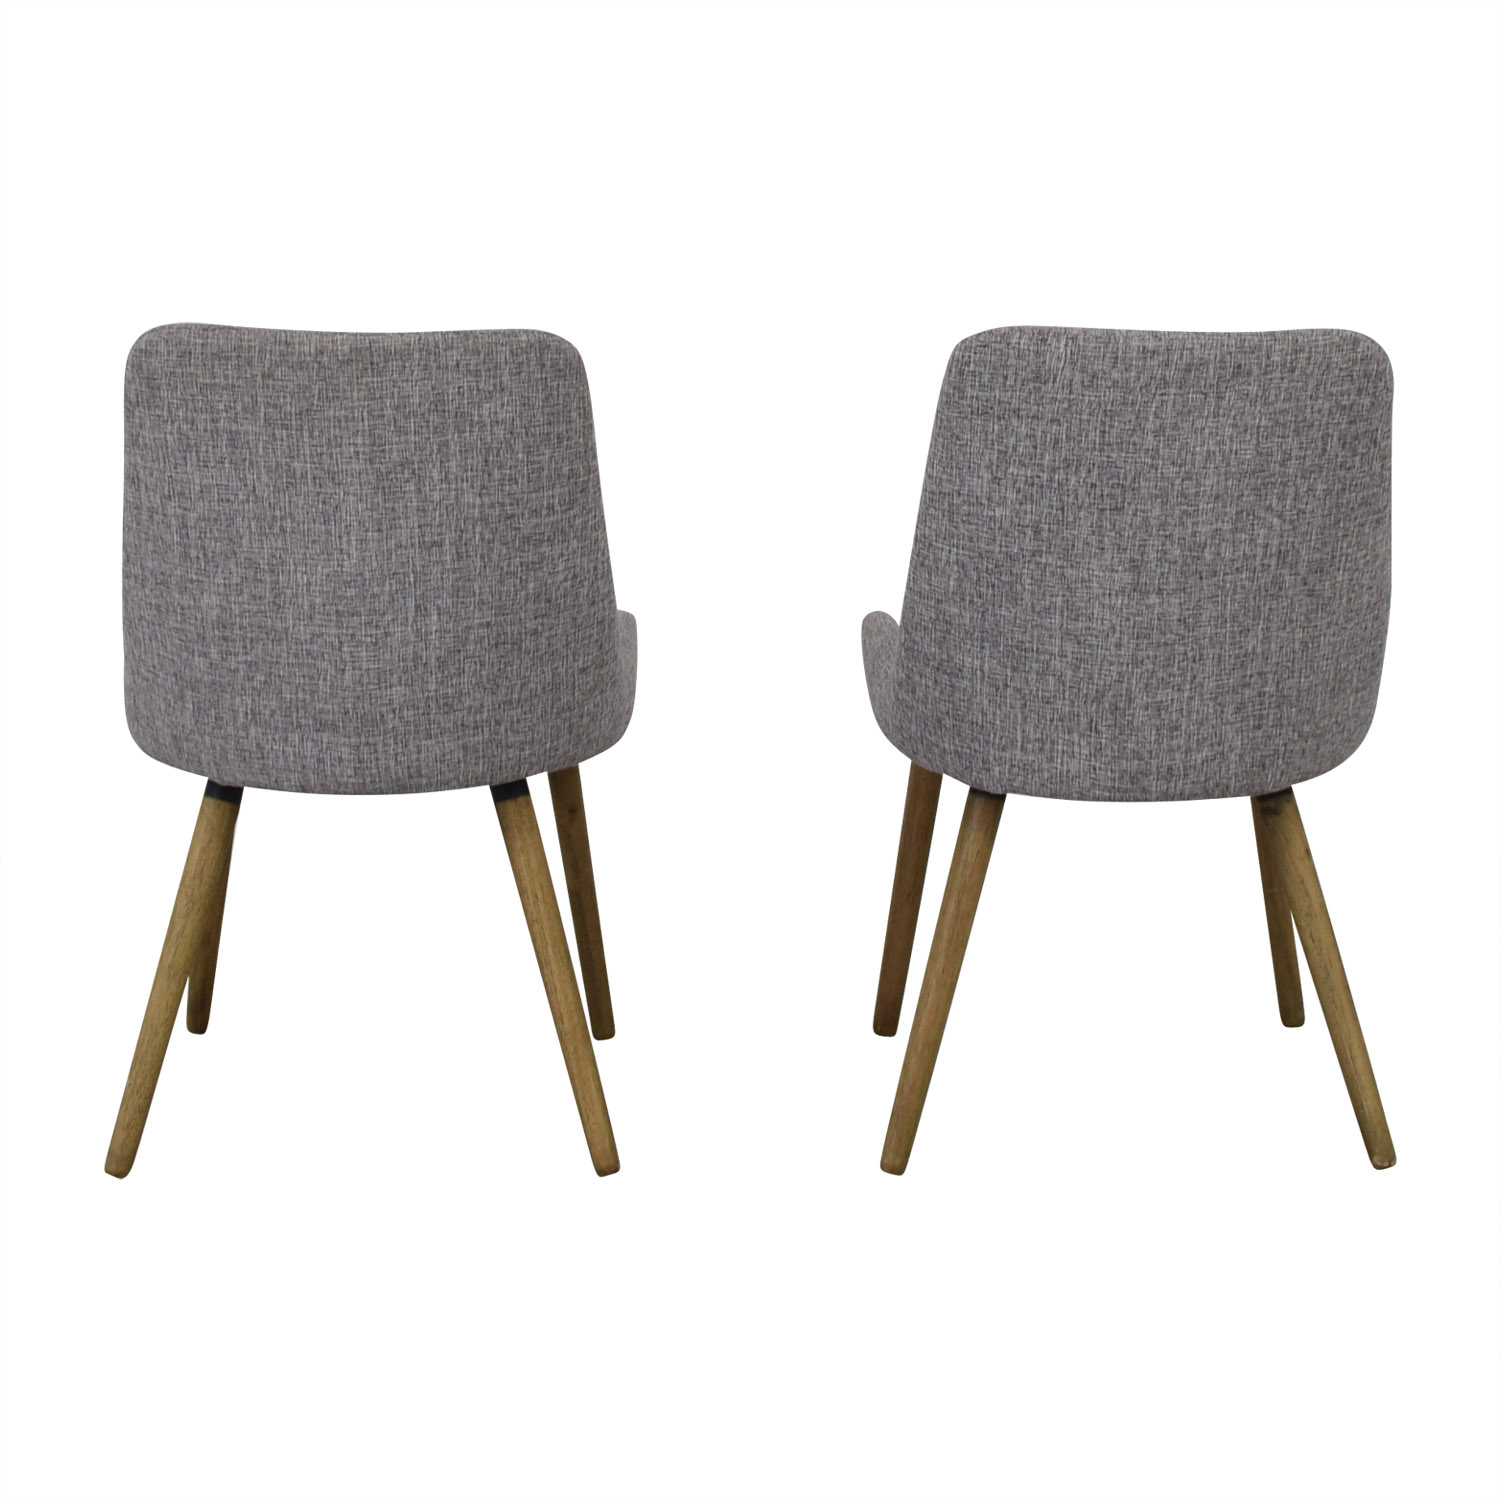 buy West Elm Mid Century Upholstered Dining Chairs West Elm Chairs